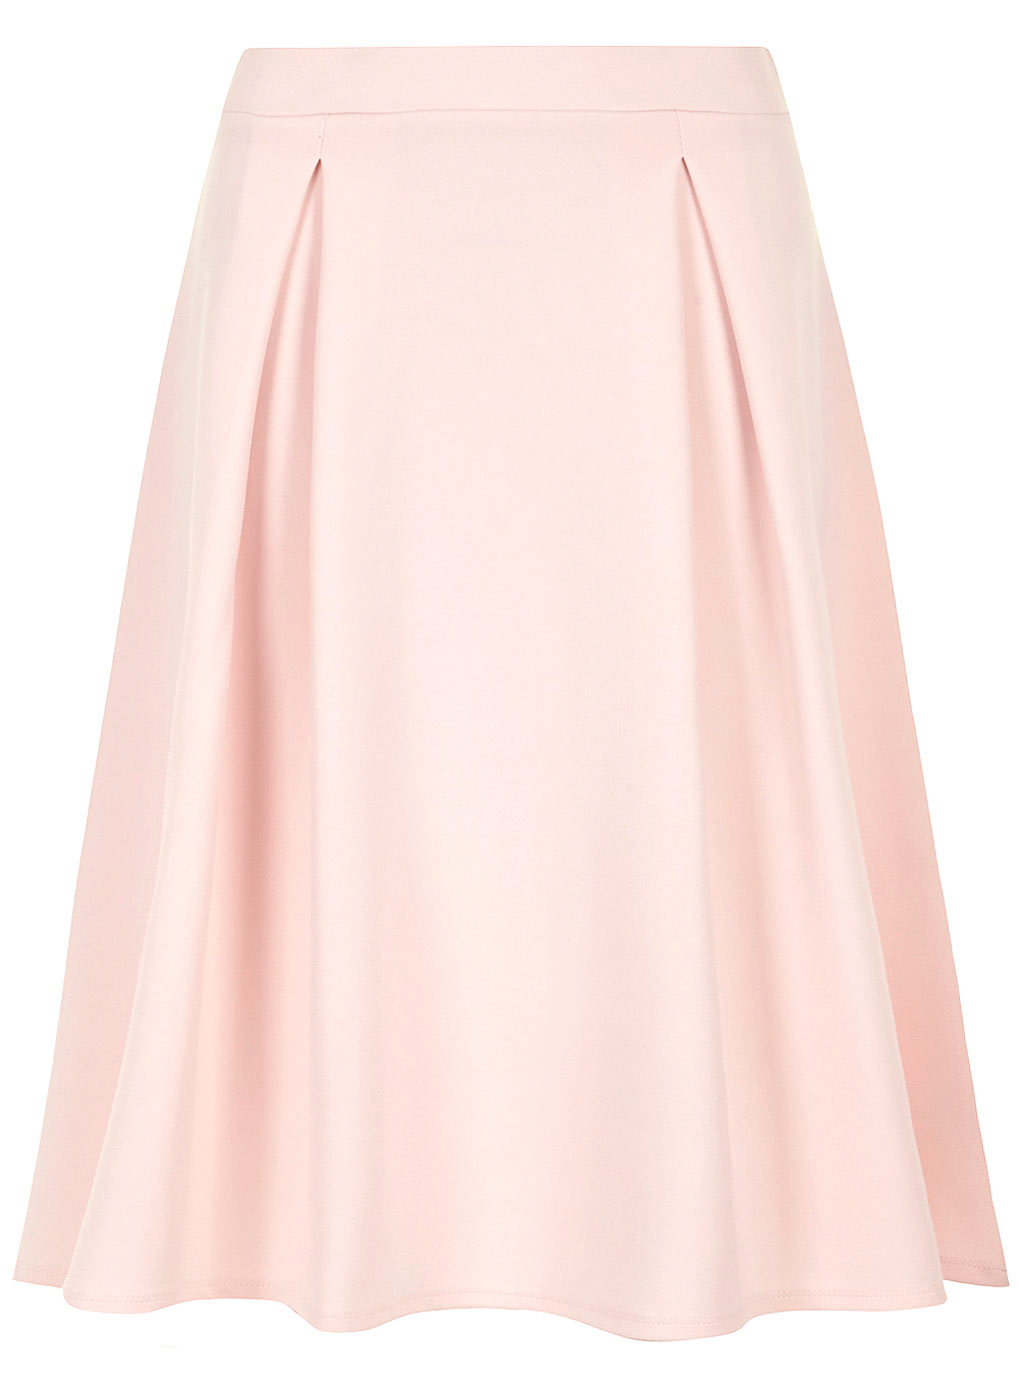 dorothy perkins pale pink pleated midi skirt wrinkle